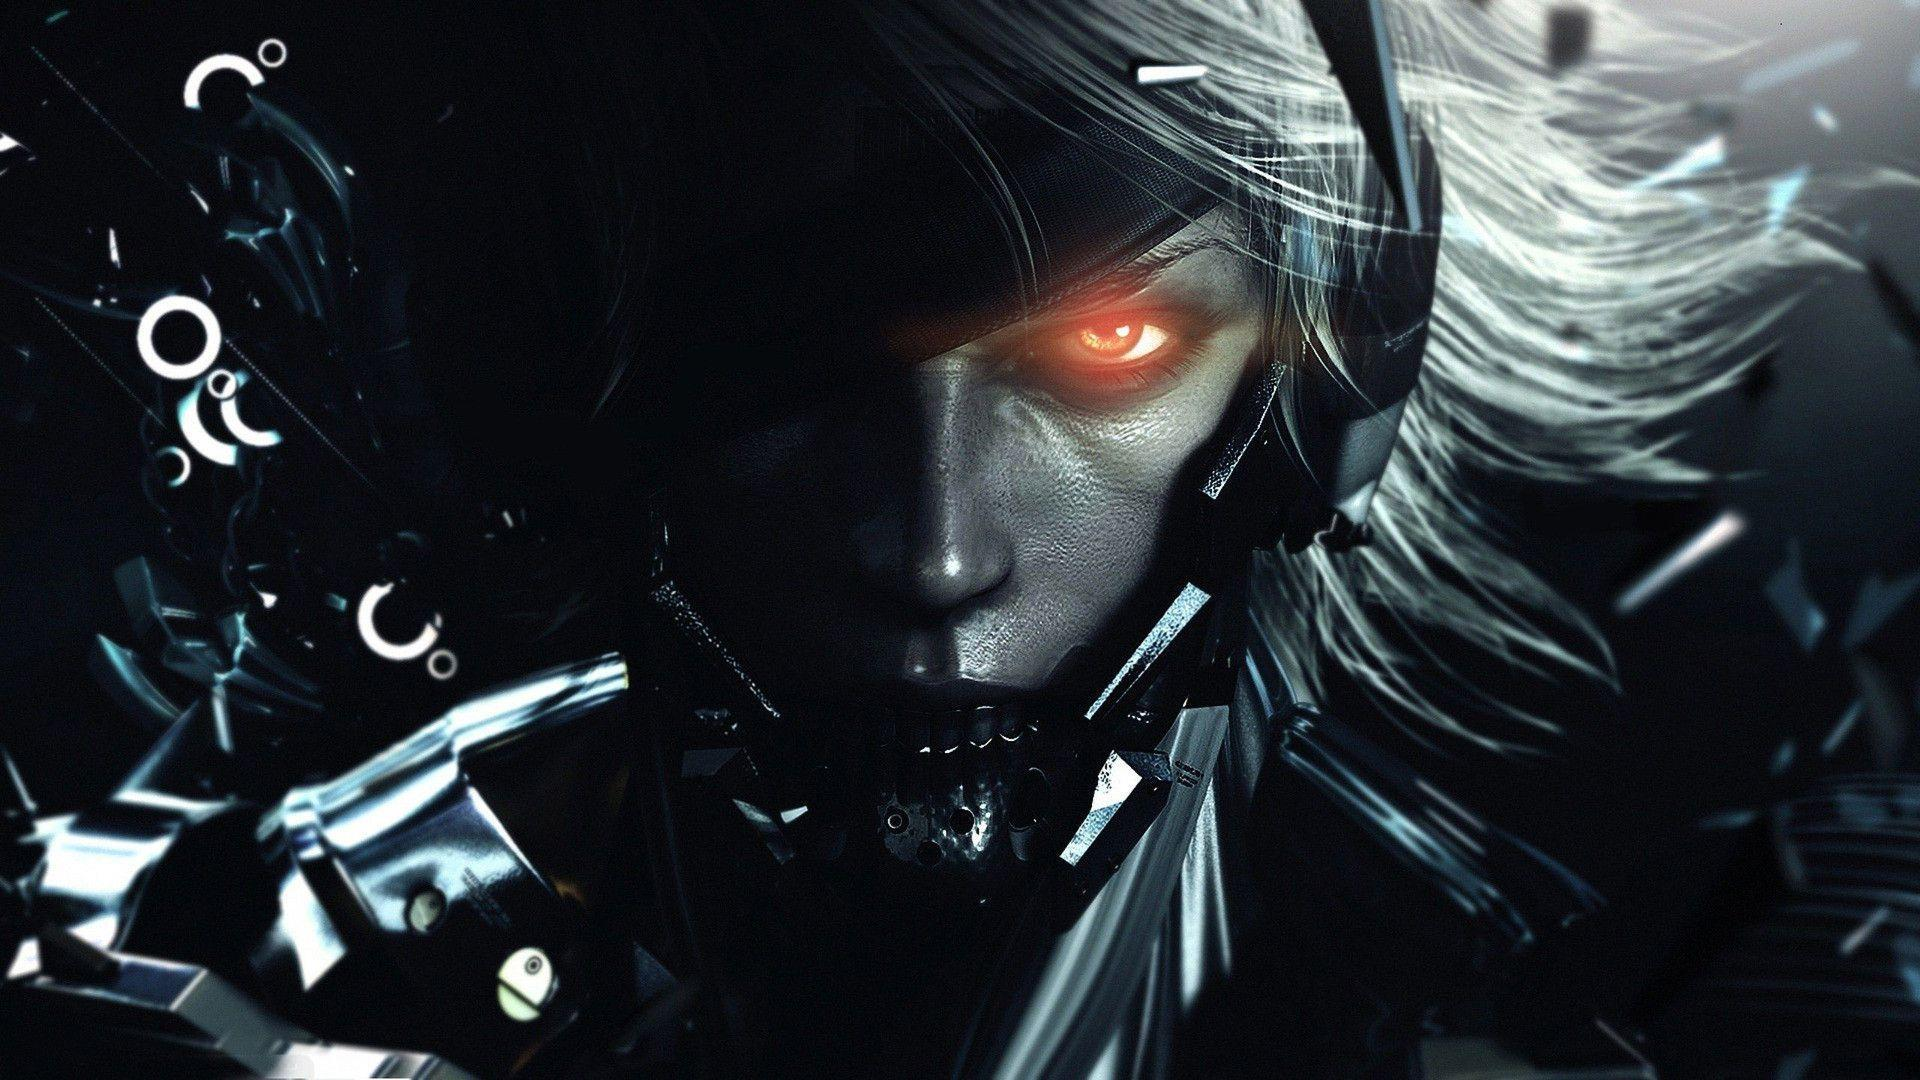 42 Hd Raiden Wallpaper On Wallpapersafari: Metal Gear Solid Raiden Wallpapers